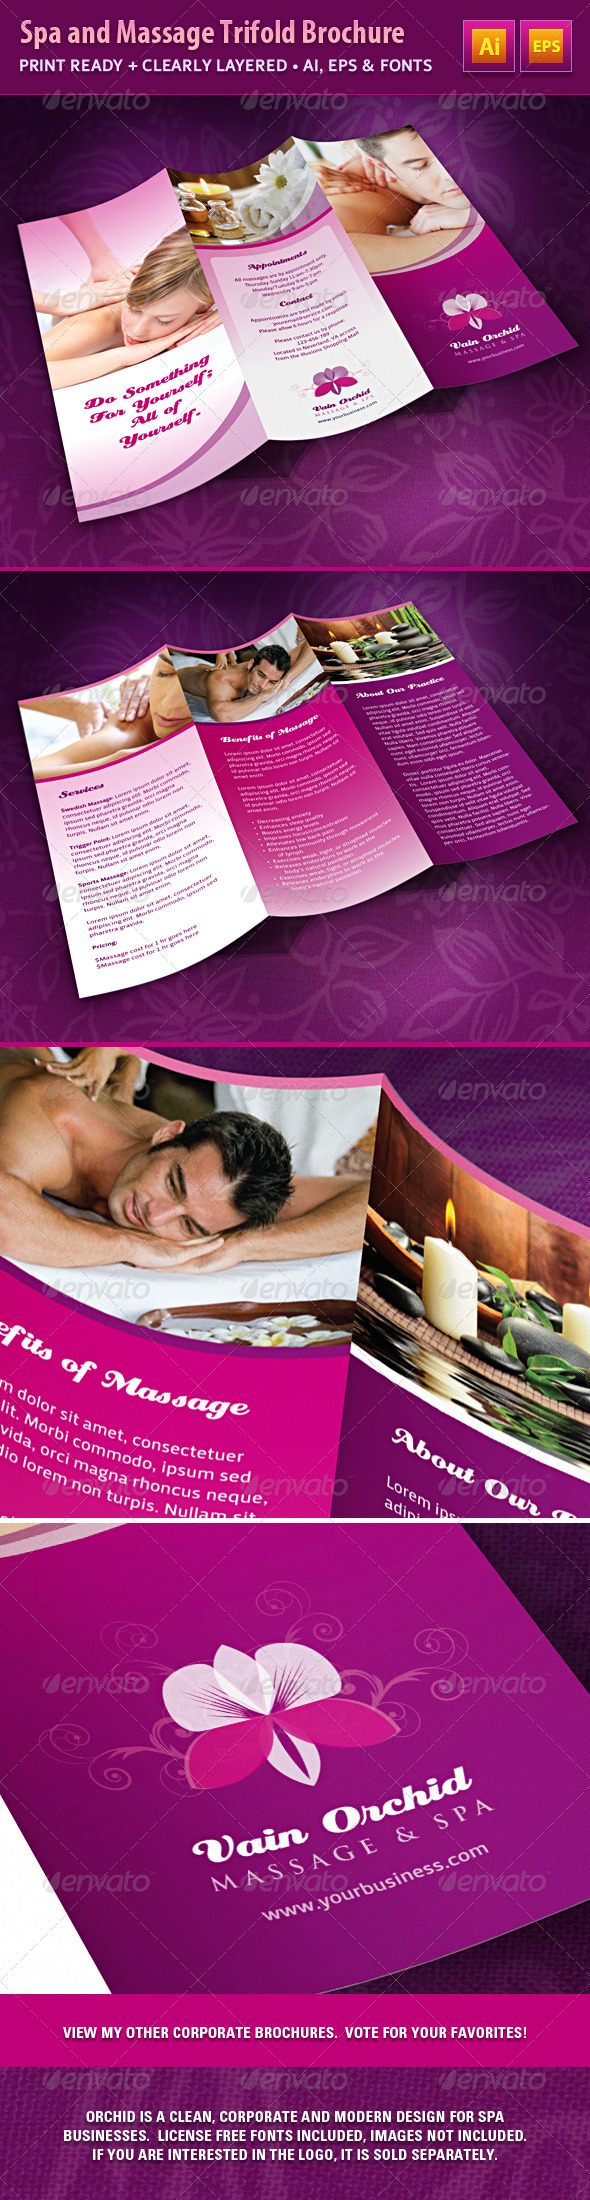 GraphicRiver Spa and Massage Business Trifold Brochure 4897017